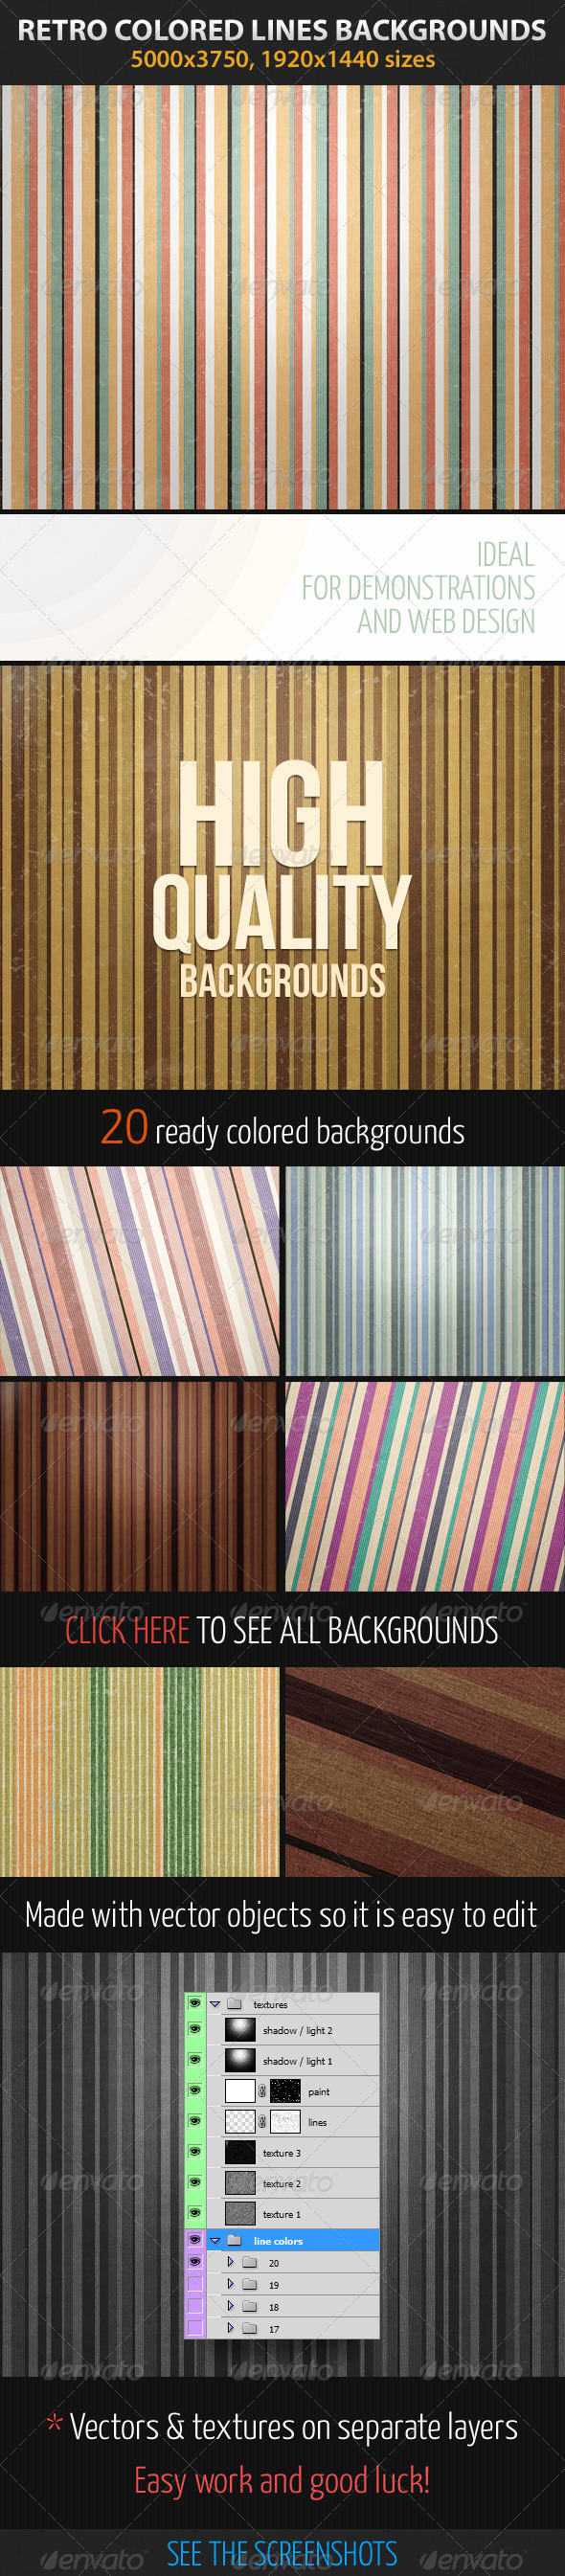 Retro Colored Lines - Patterns Backgrounds